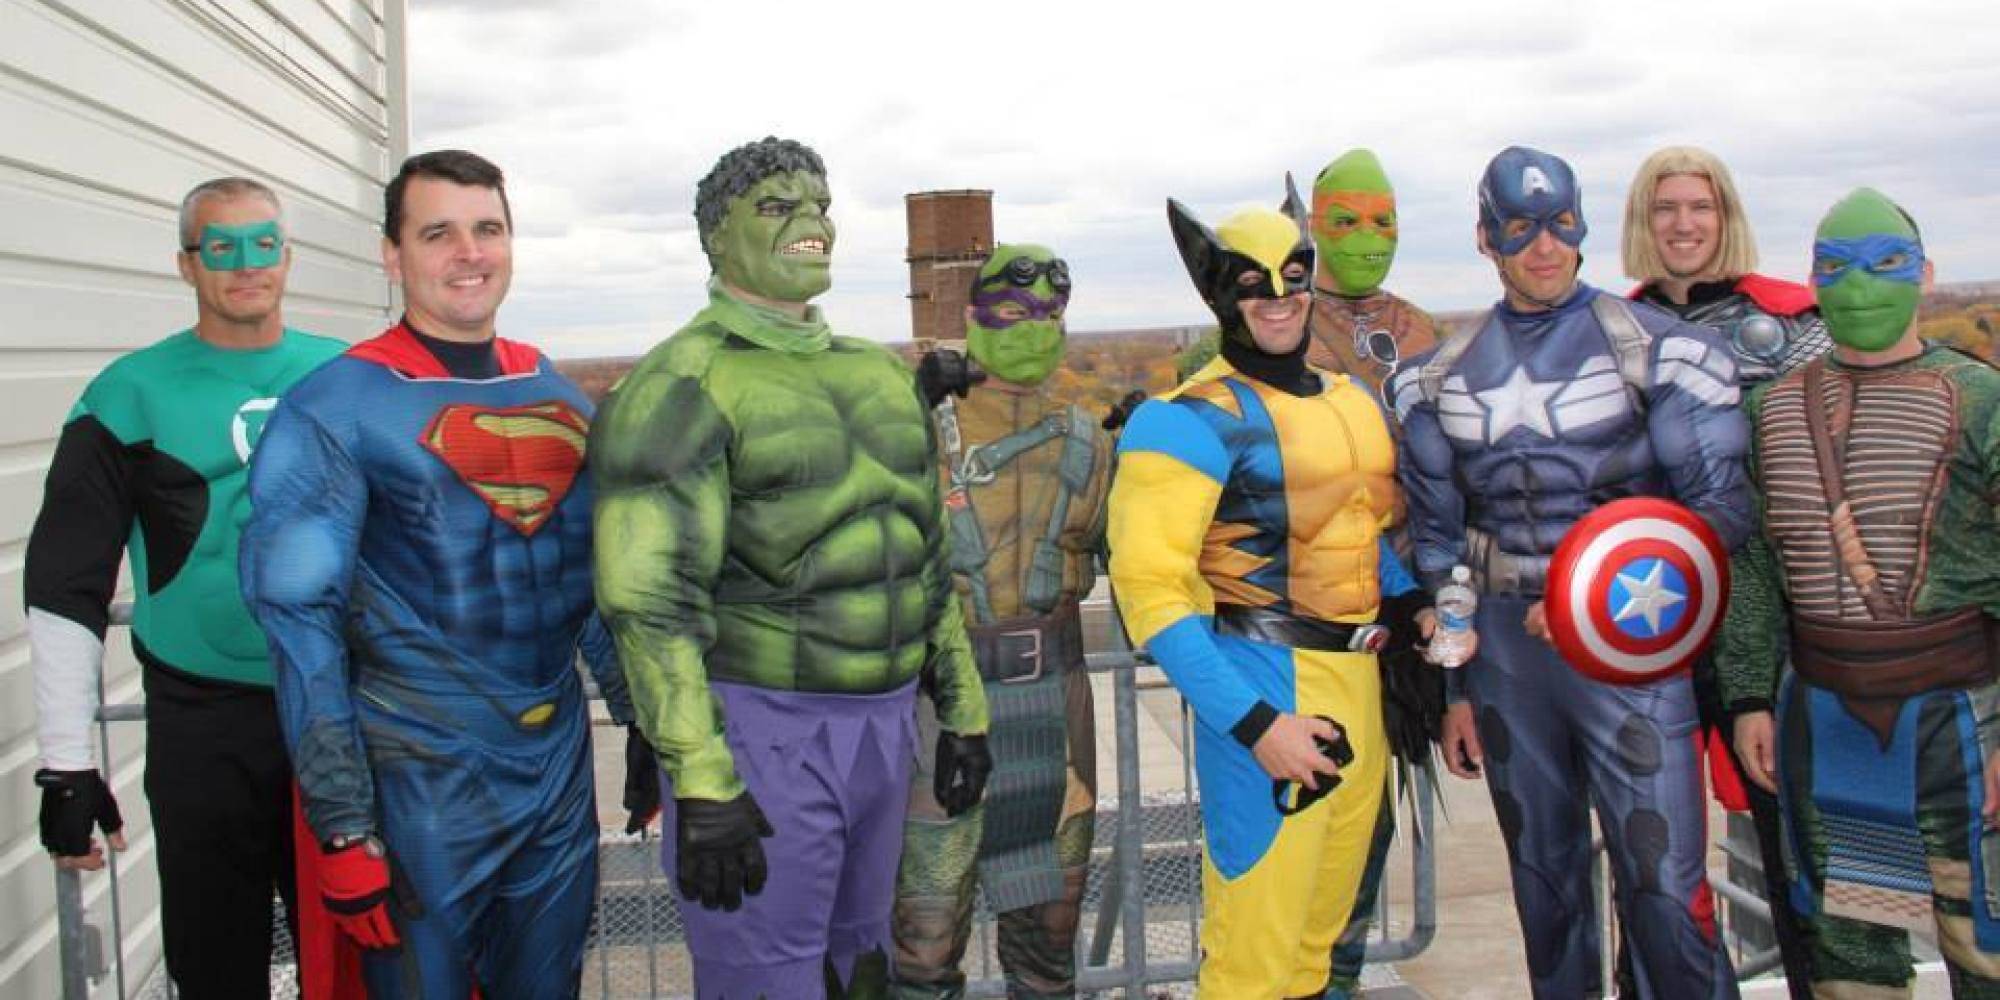 Were Going To Be Seeing Some Really >> SWAT Team Dresses Up As Superheroes, Saves The Day At Children's Hospital | HuffPost